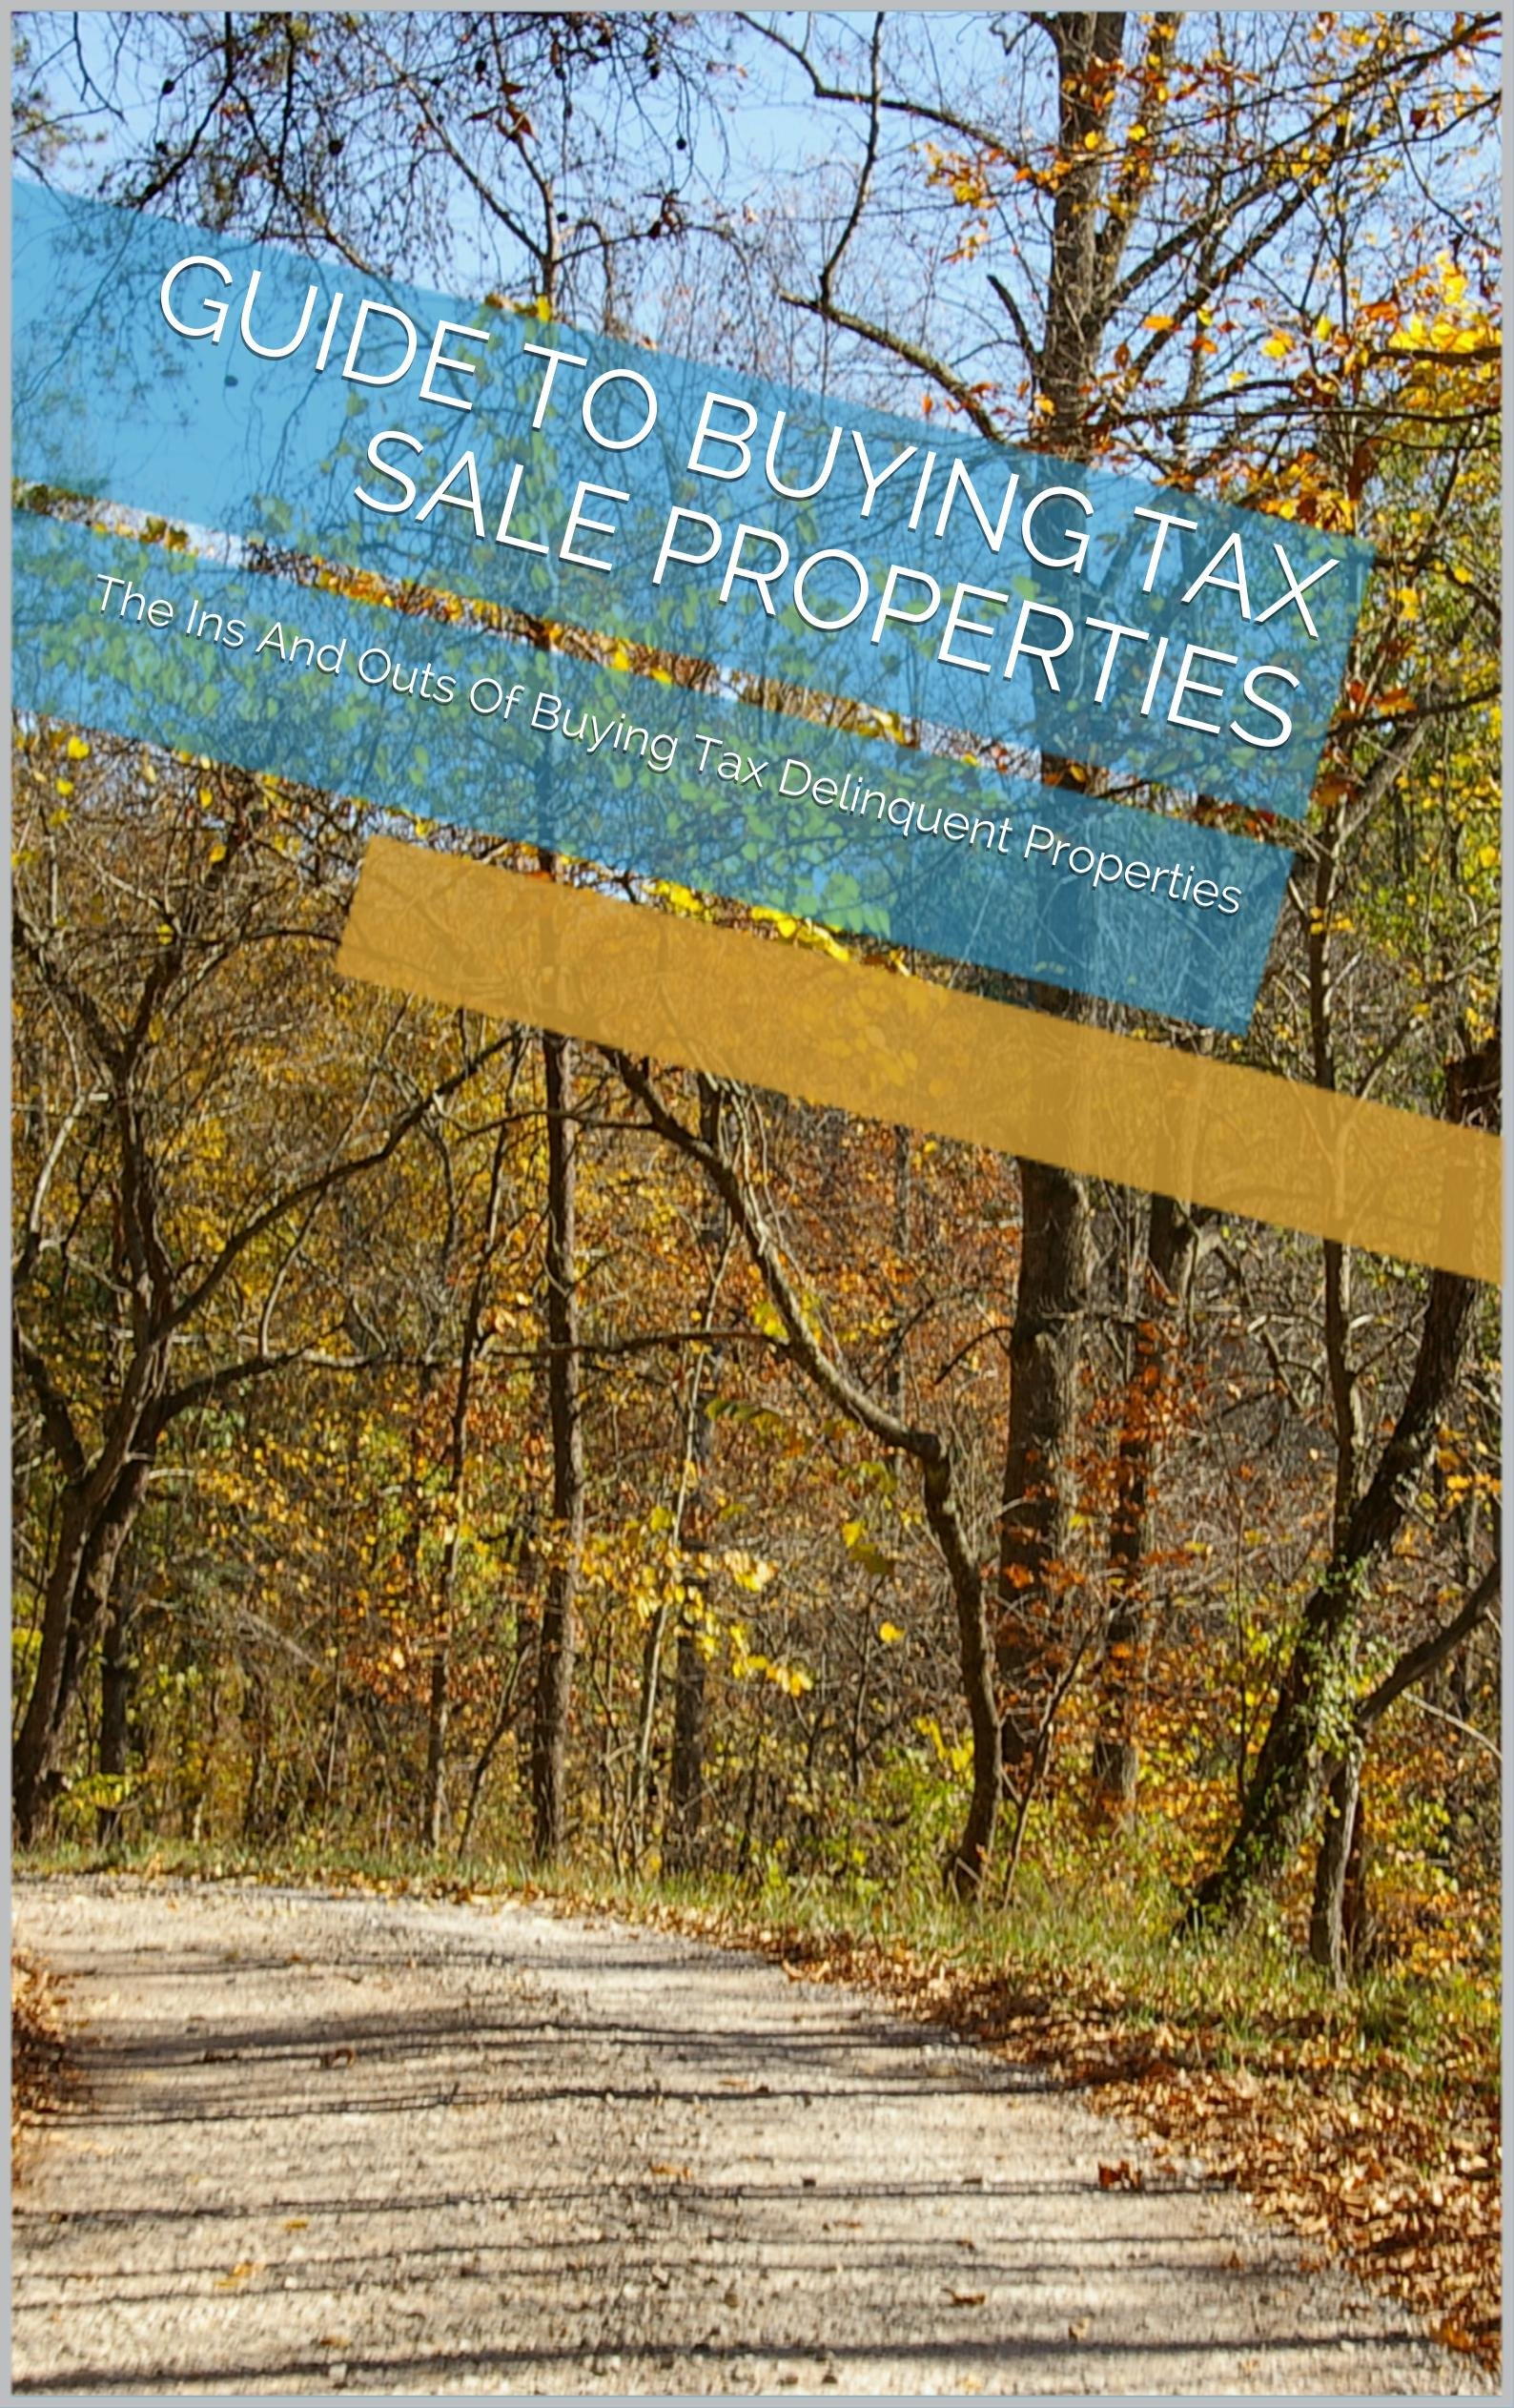 Guide To Buying Tax Sale Properties: The Ins And Outs Of Buying Tax Delinquent Properties